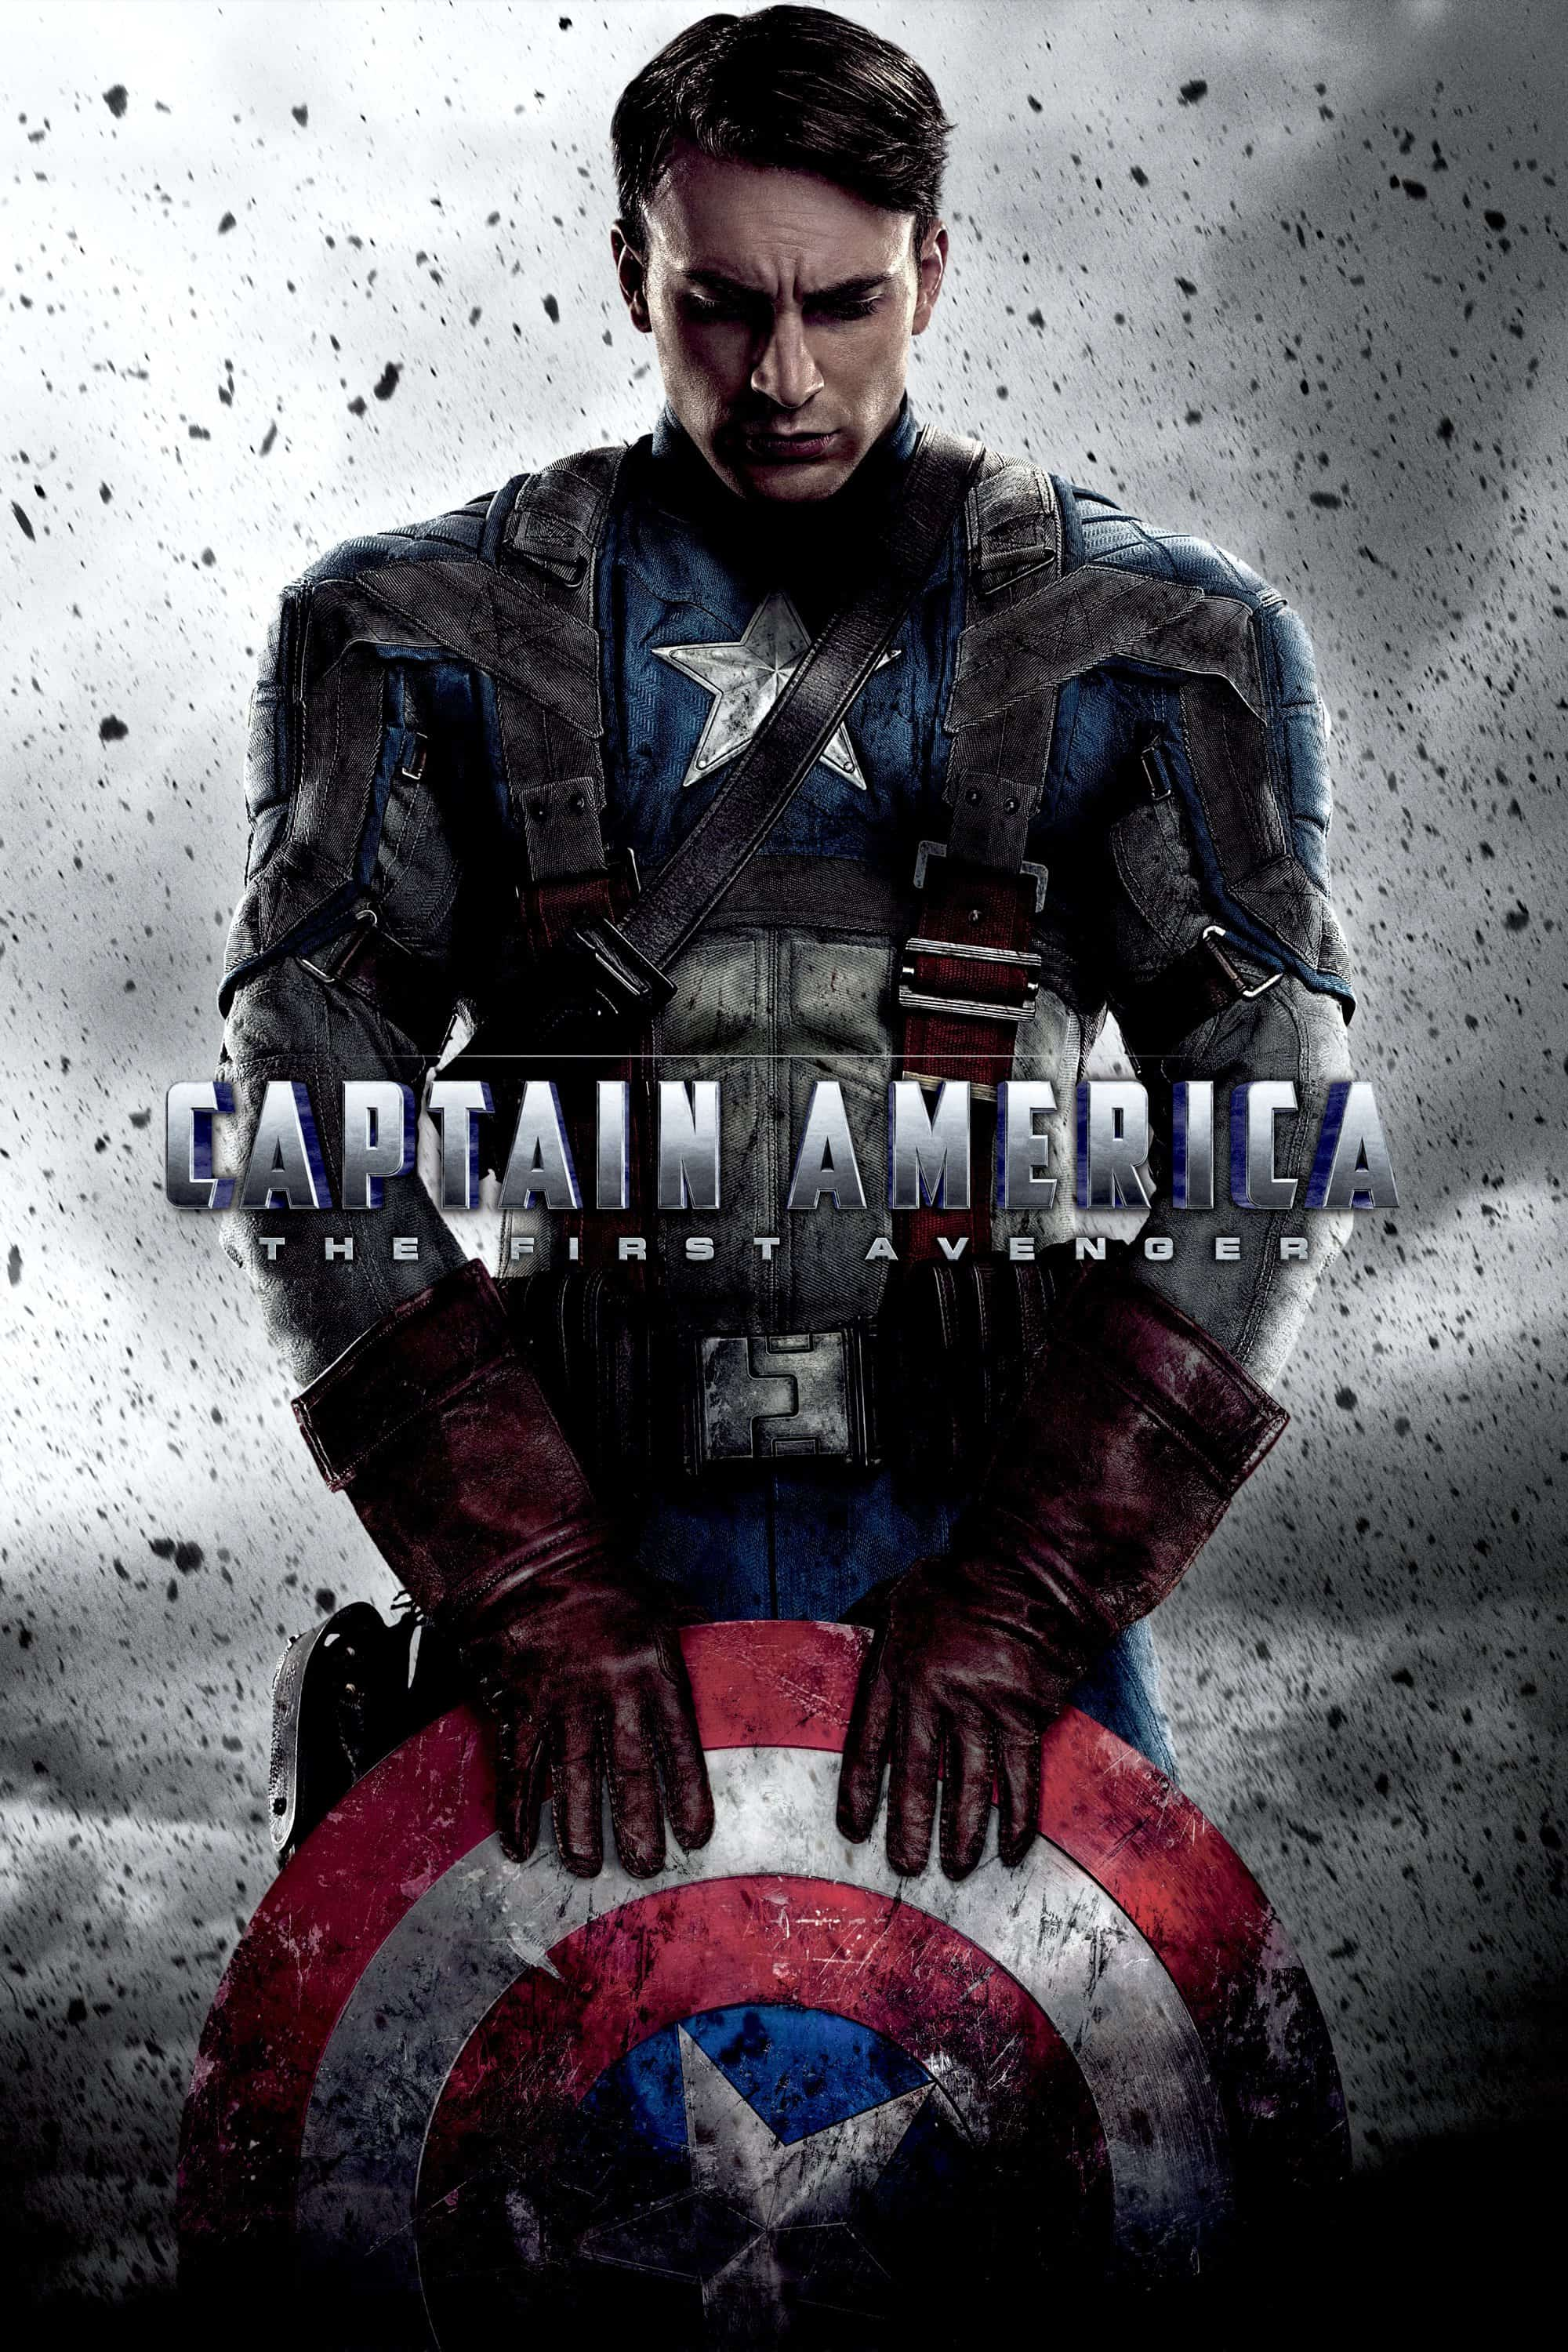 Captain America: The First Avenger, 2011